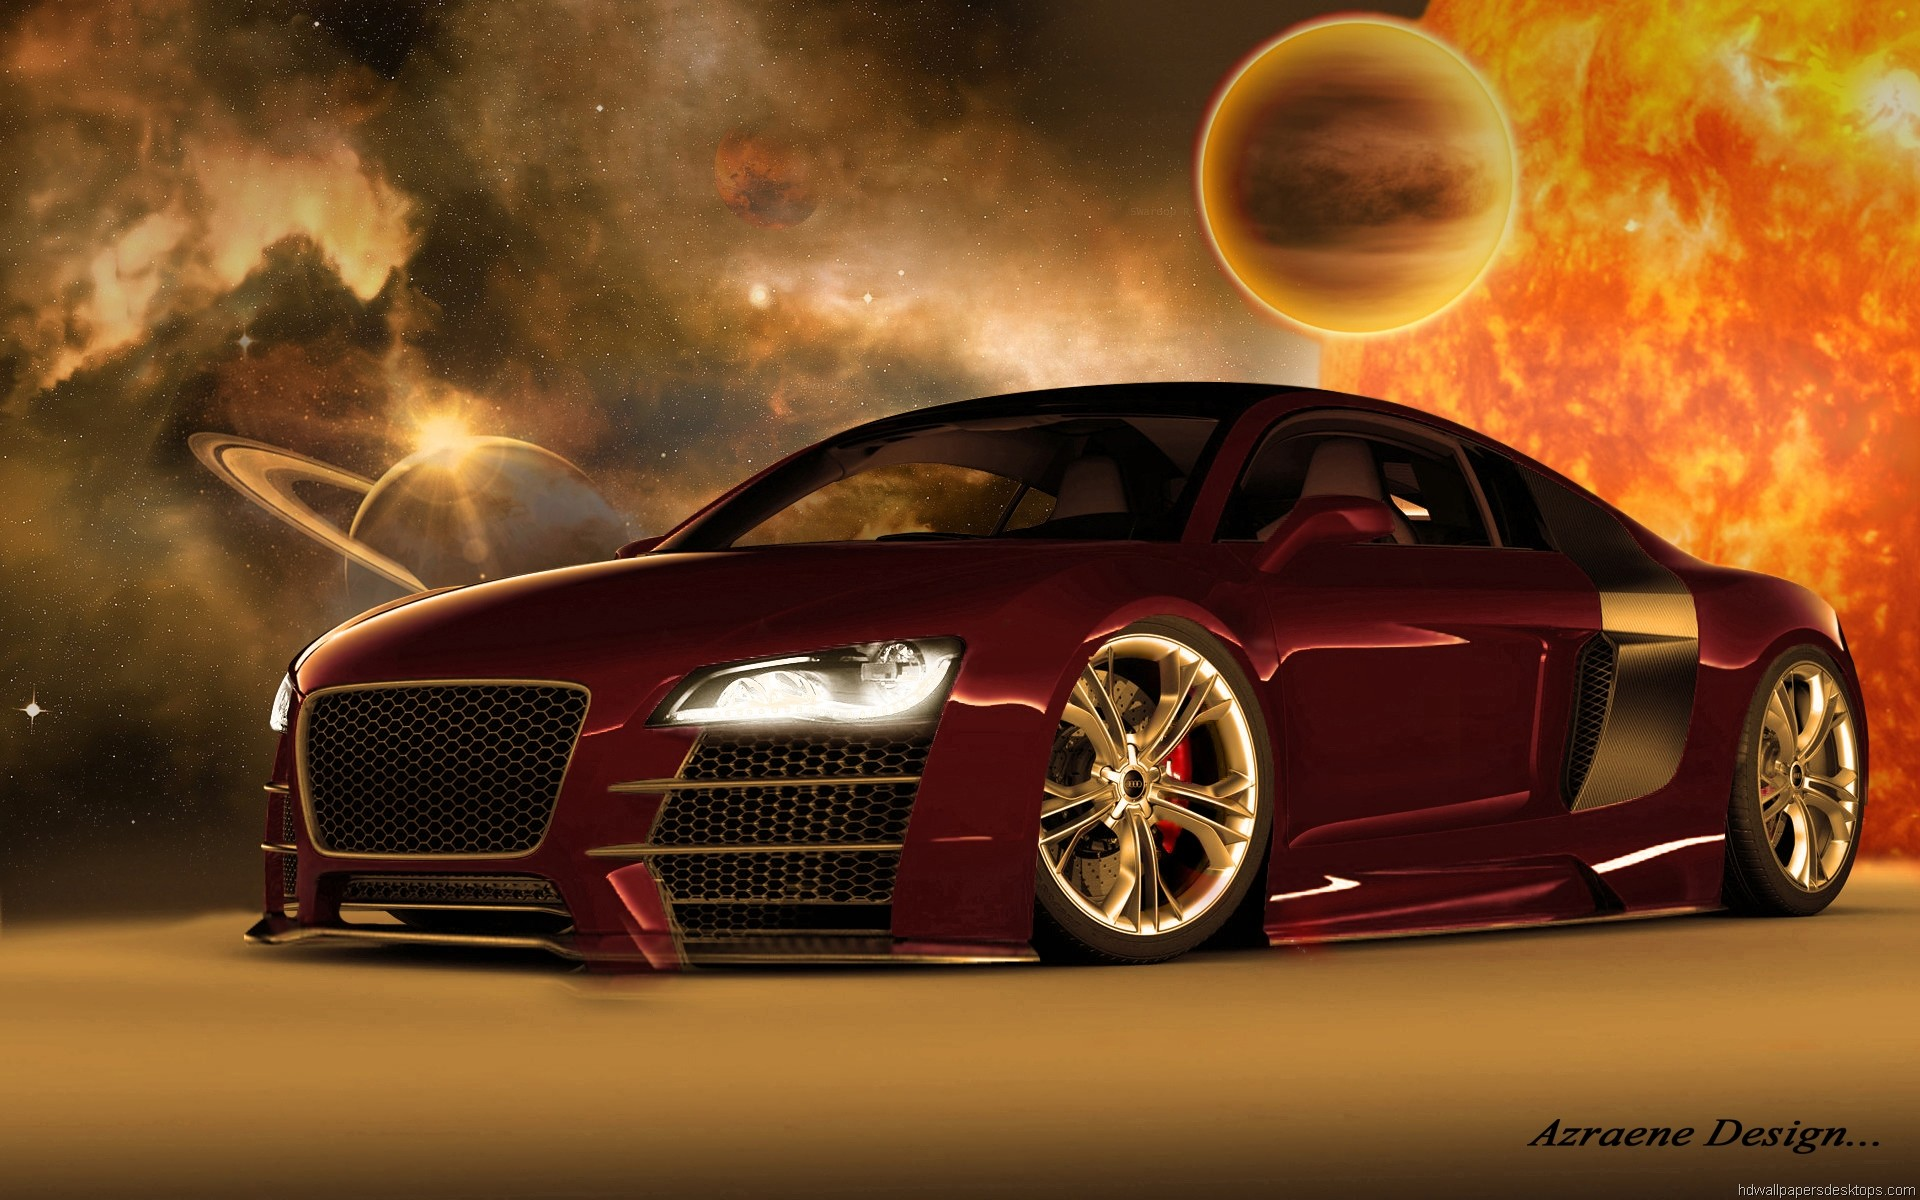 1920x1200 cars wallpapers hd full hd 1080p desktop backgrounds